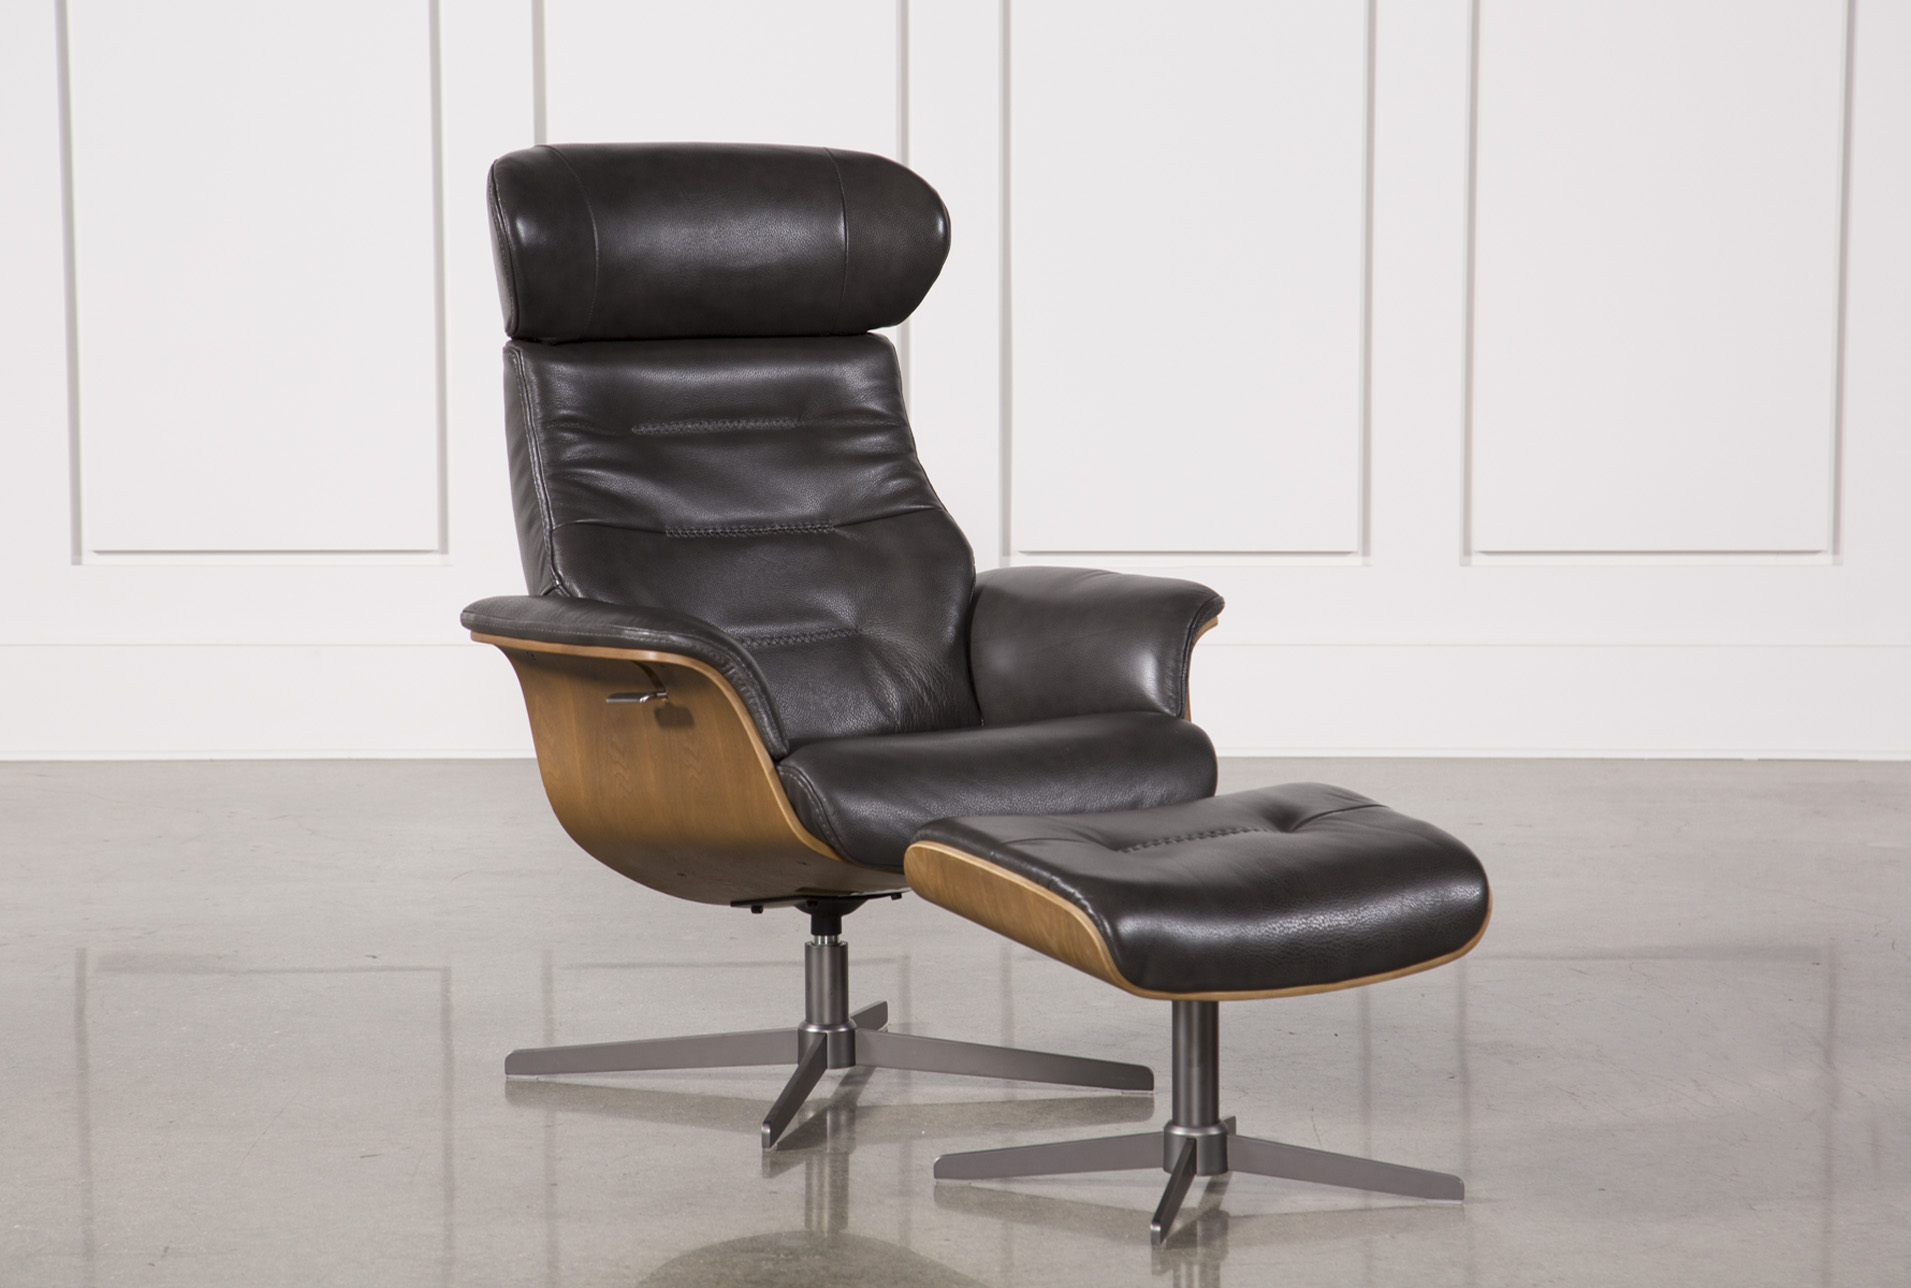 Chair Leather Reclining Swivel Amala Dark Grey Leather Reclining Swivel Chair Ottoman